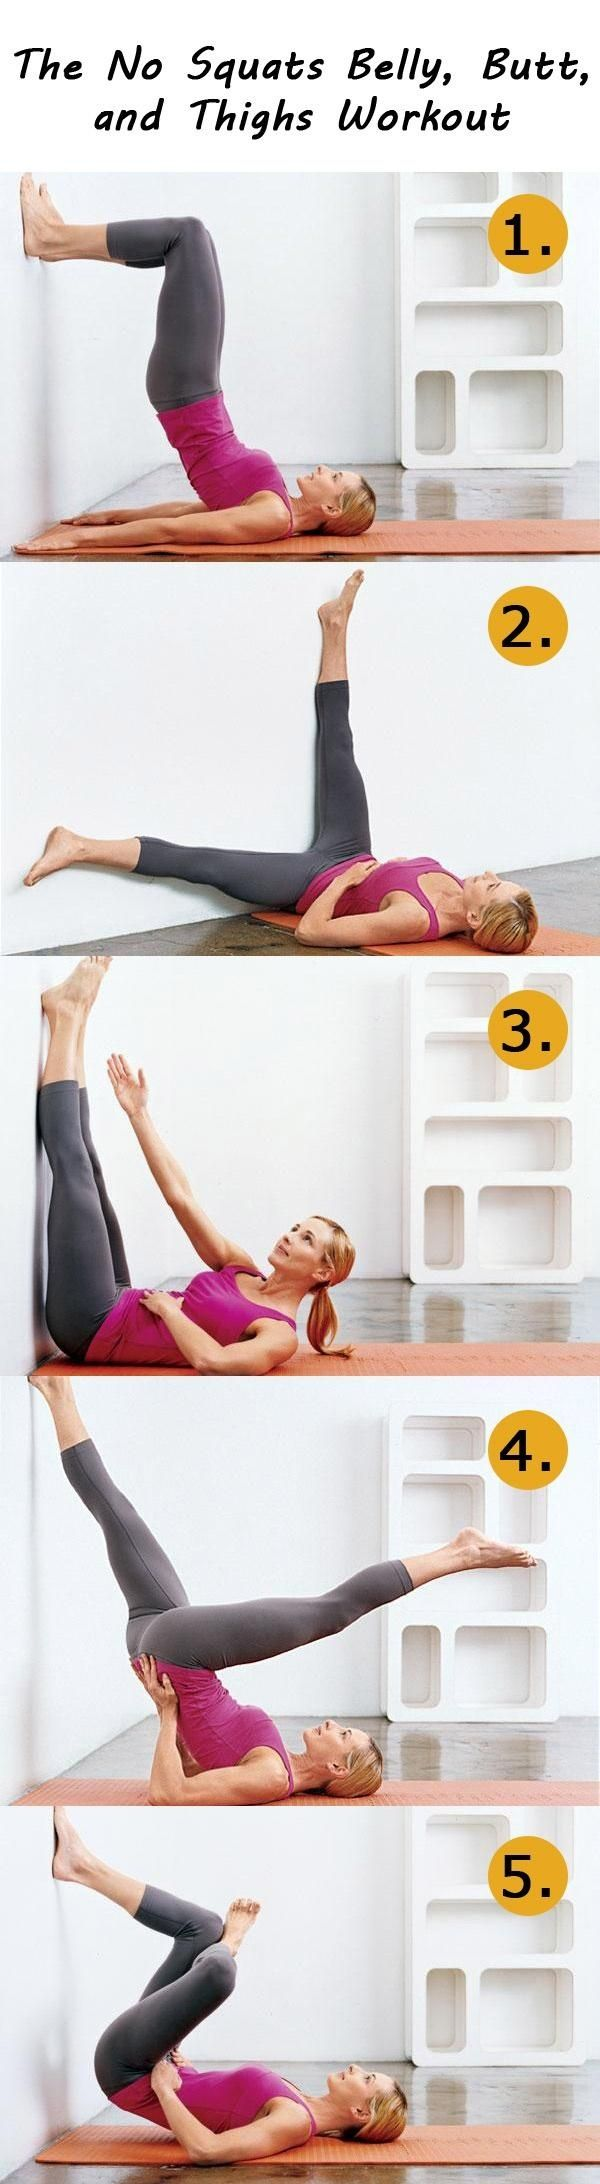 With this workout routine you will be able to flatten your belly, slim your thighs